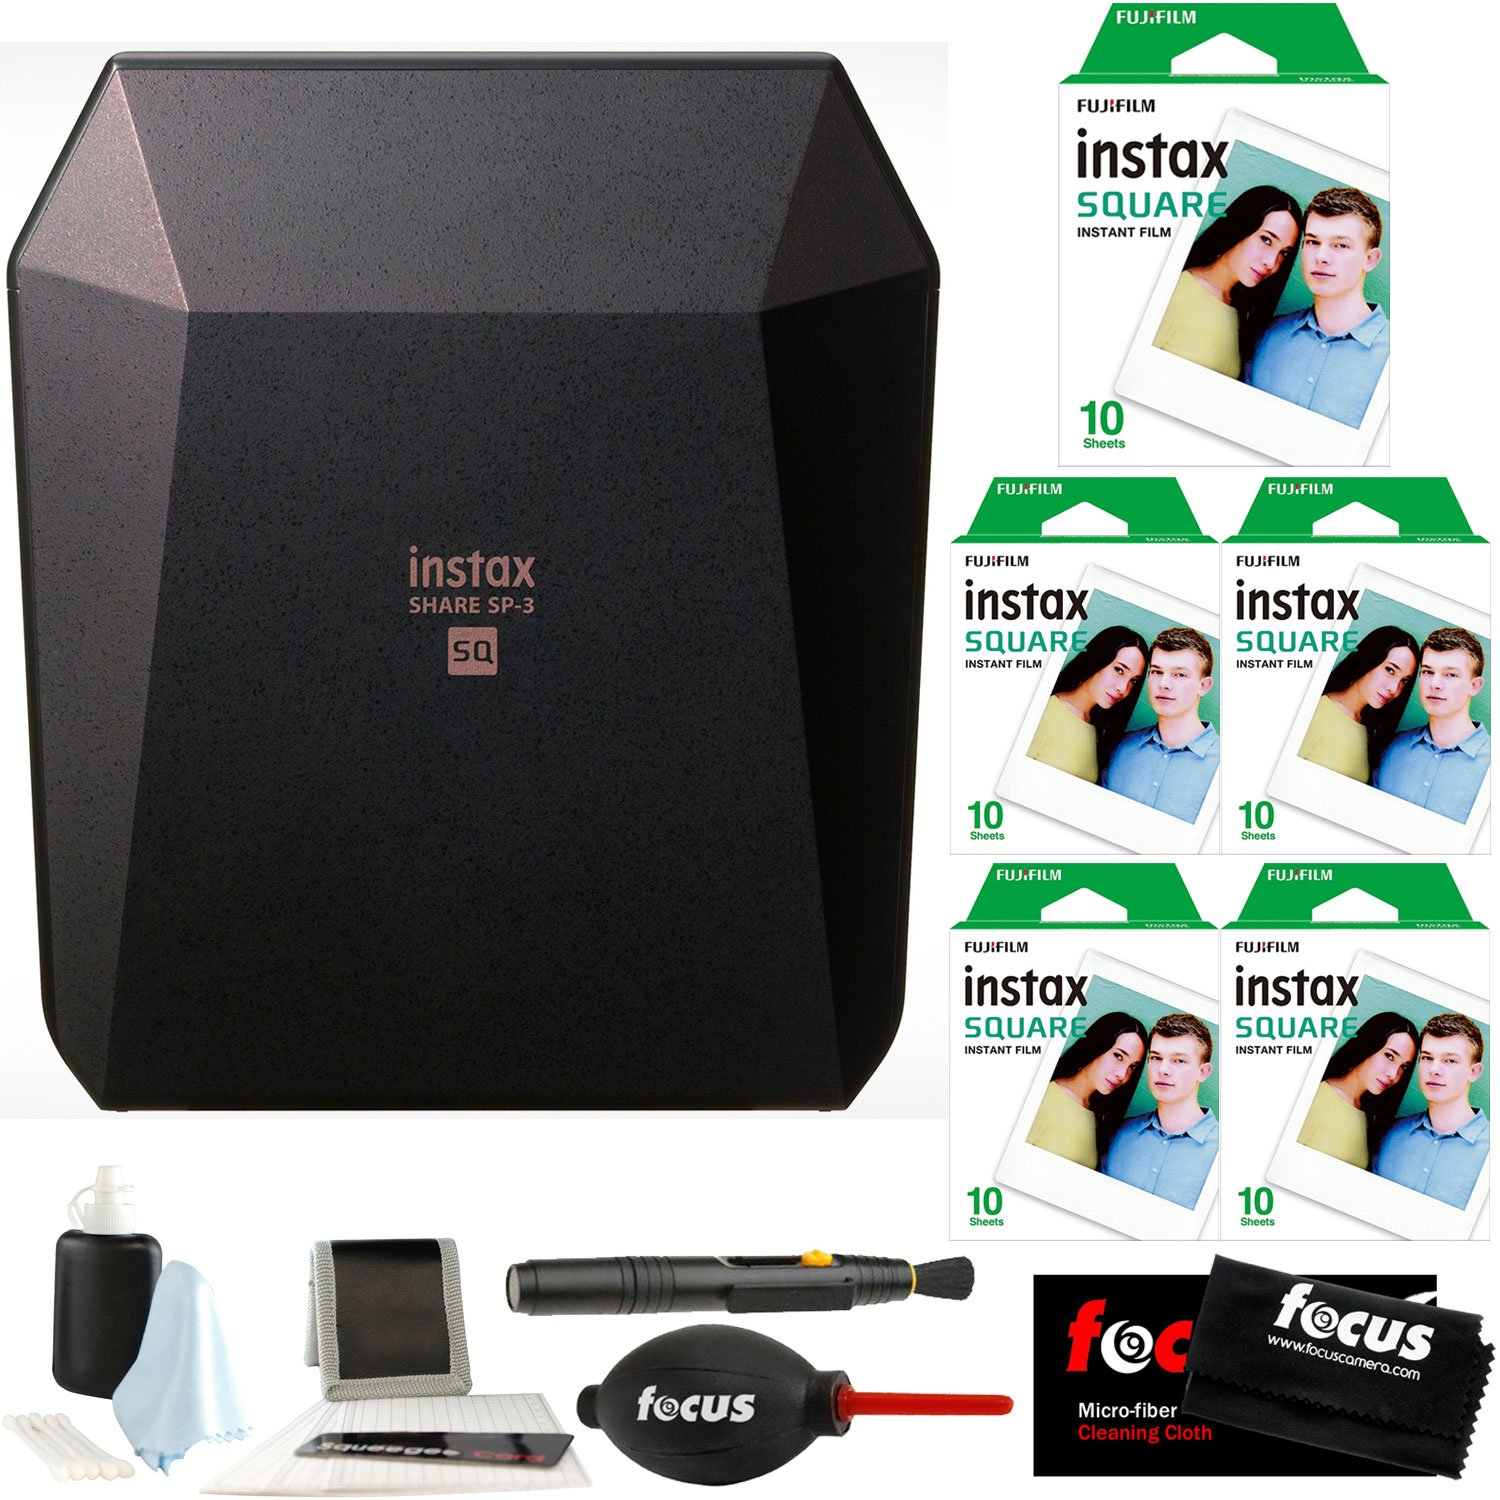 Fujifilm Instax Share SP-3 Smartphone Printer (Black) w/ SQ10 Film Pack Bundle